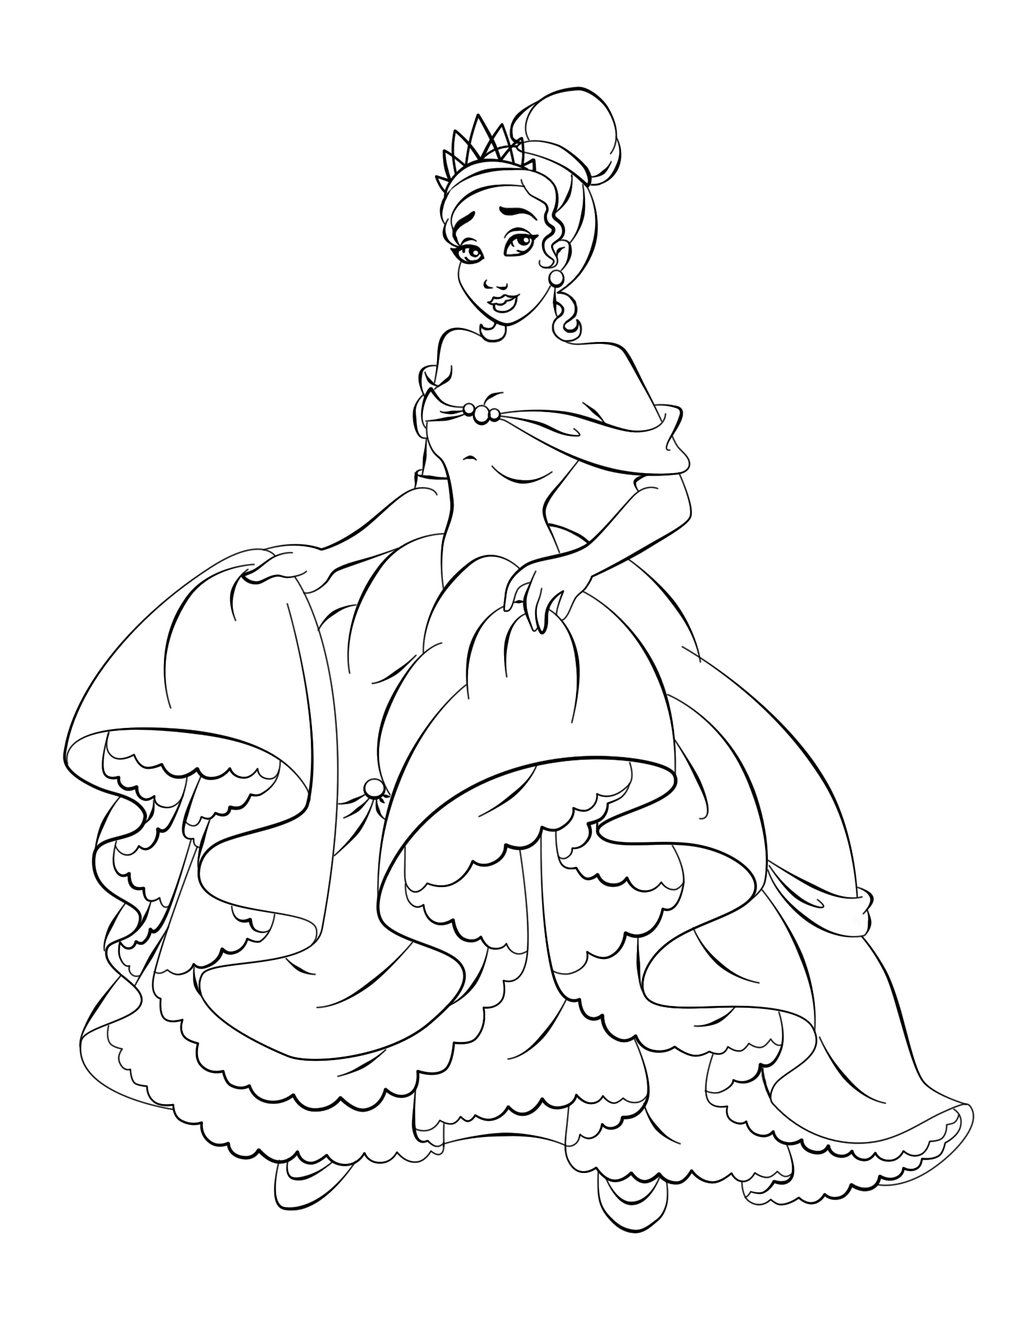 Coloring Book Pages Princess : Free printable princess tiana coloring pages for kids